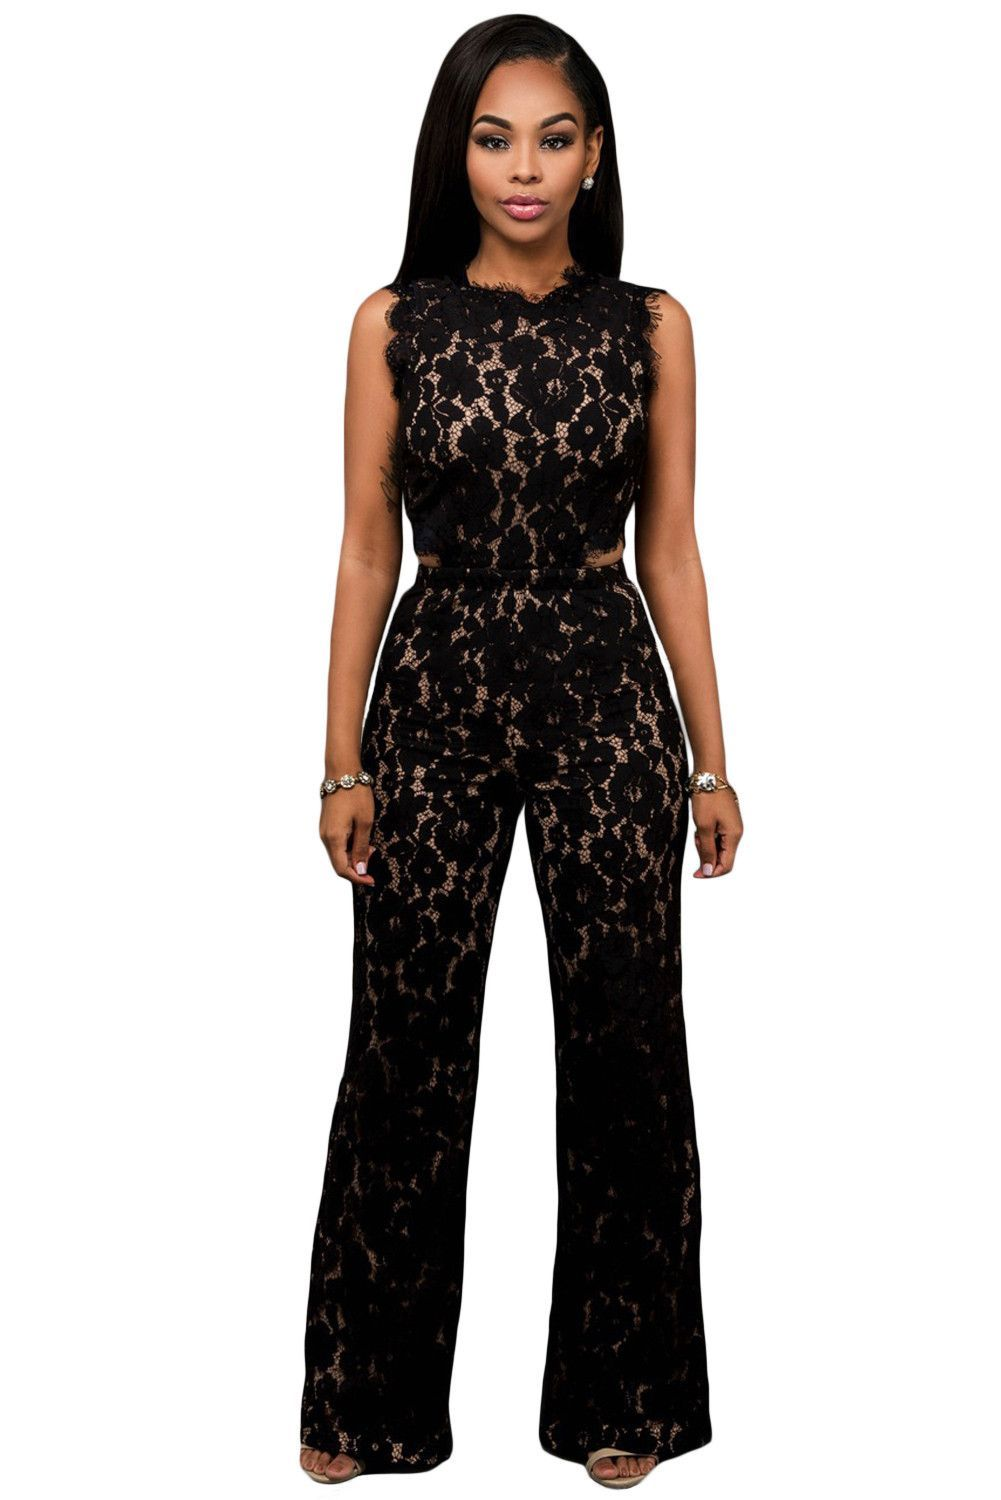 7e8f5554555 SpecificationsSize  (US (US (US Color  Black DetailsGive your favorite dress  the night off and slip into this ultra-sexy jumpsuit for you